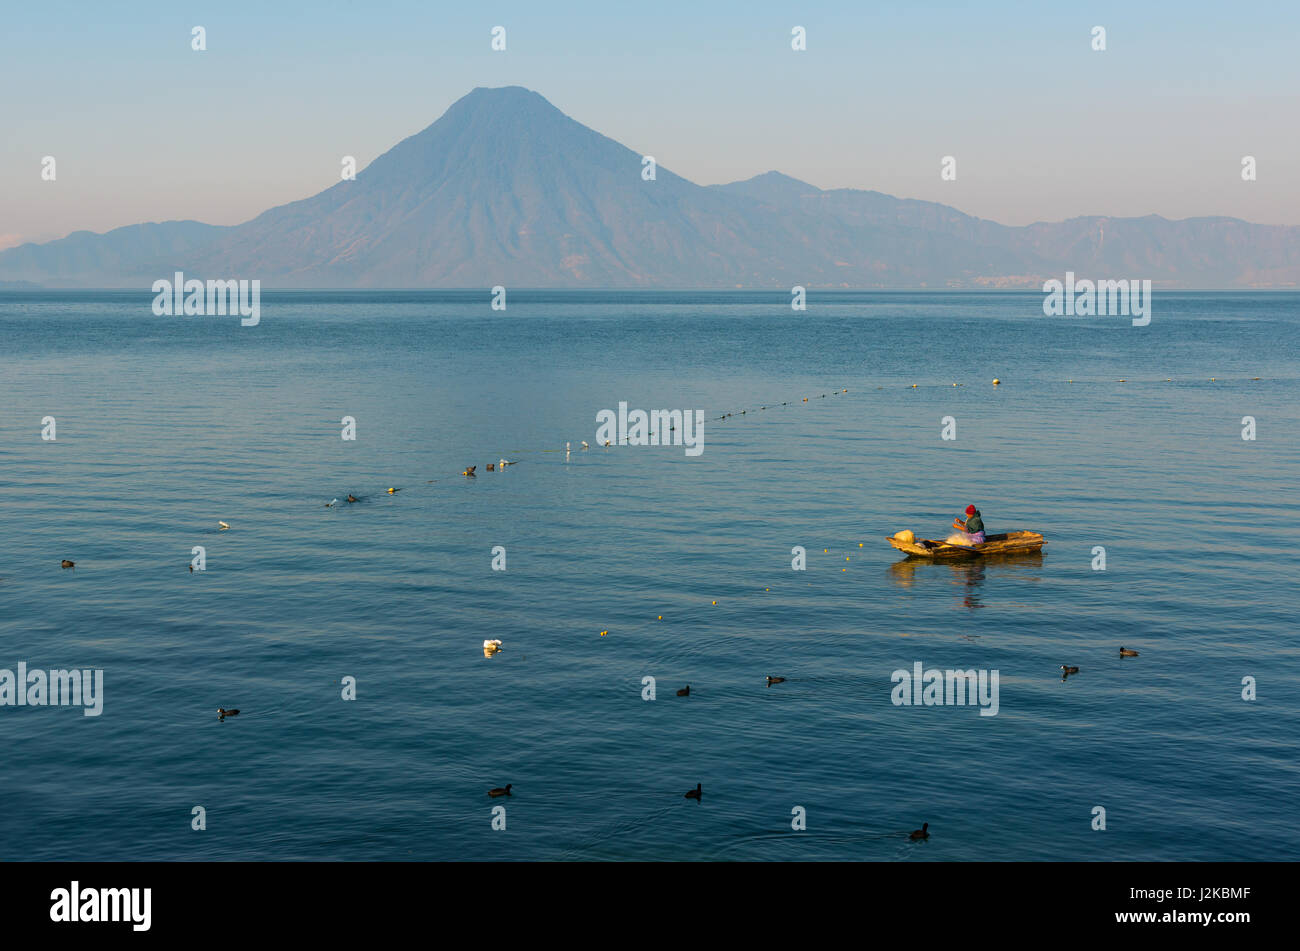 Fisherman in his boat controlling his nets in the blue waters of the Atitlan lake with a volcano in the background - Stock Image